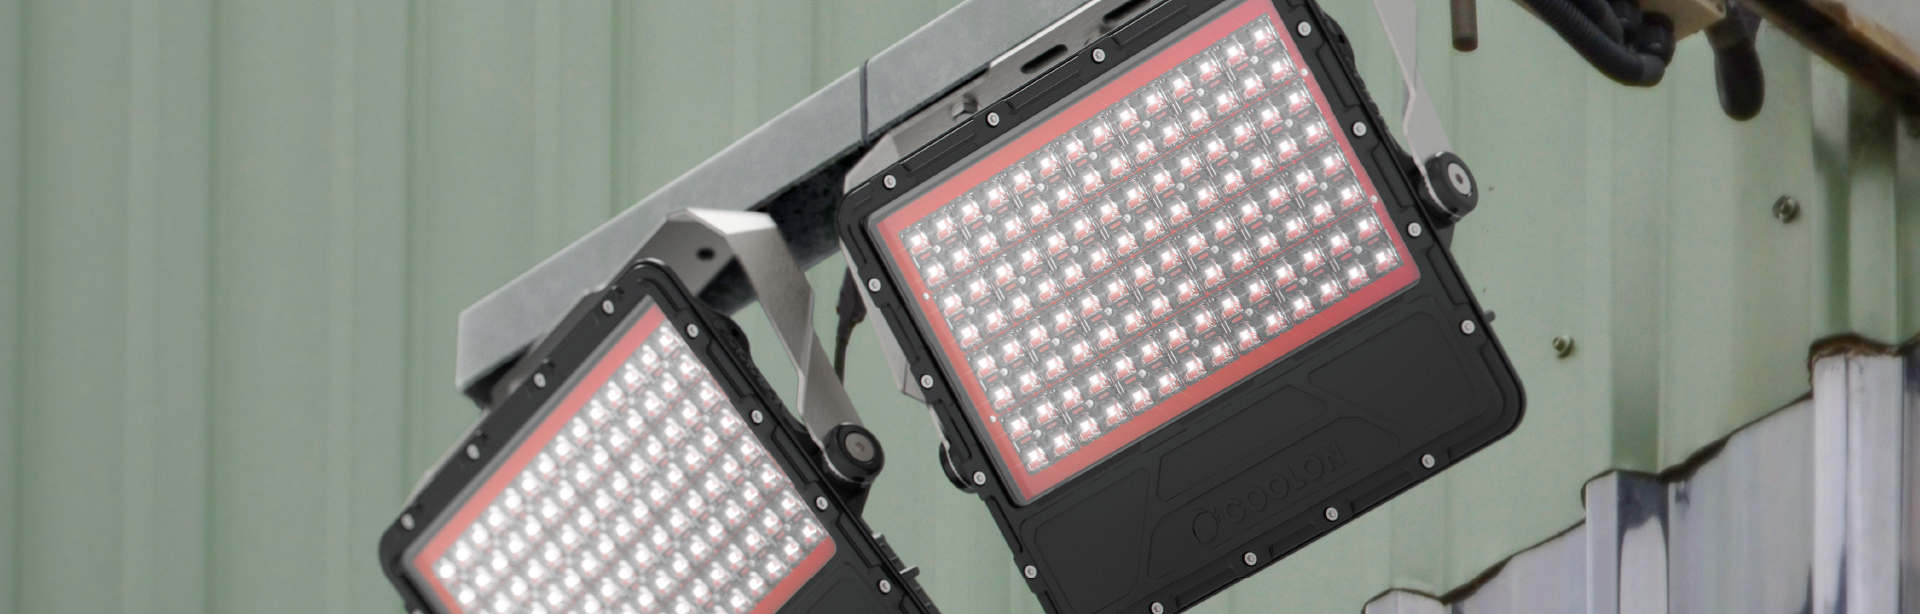 Cassidy LED mining floodlighthas been specifically designed to provide ease of installation with high flexibility in optics selection and mounting position.